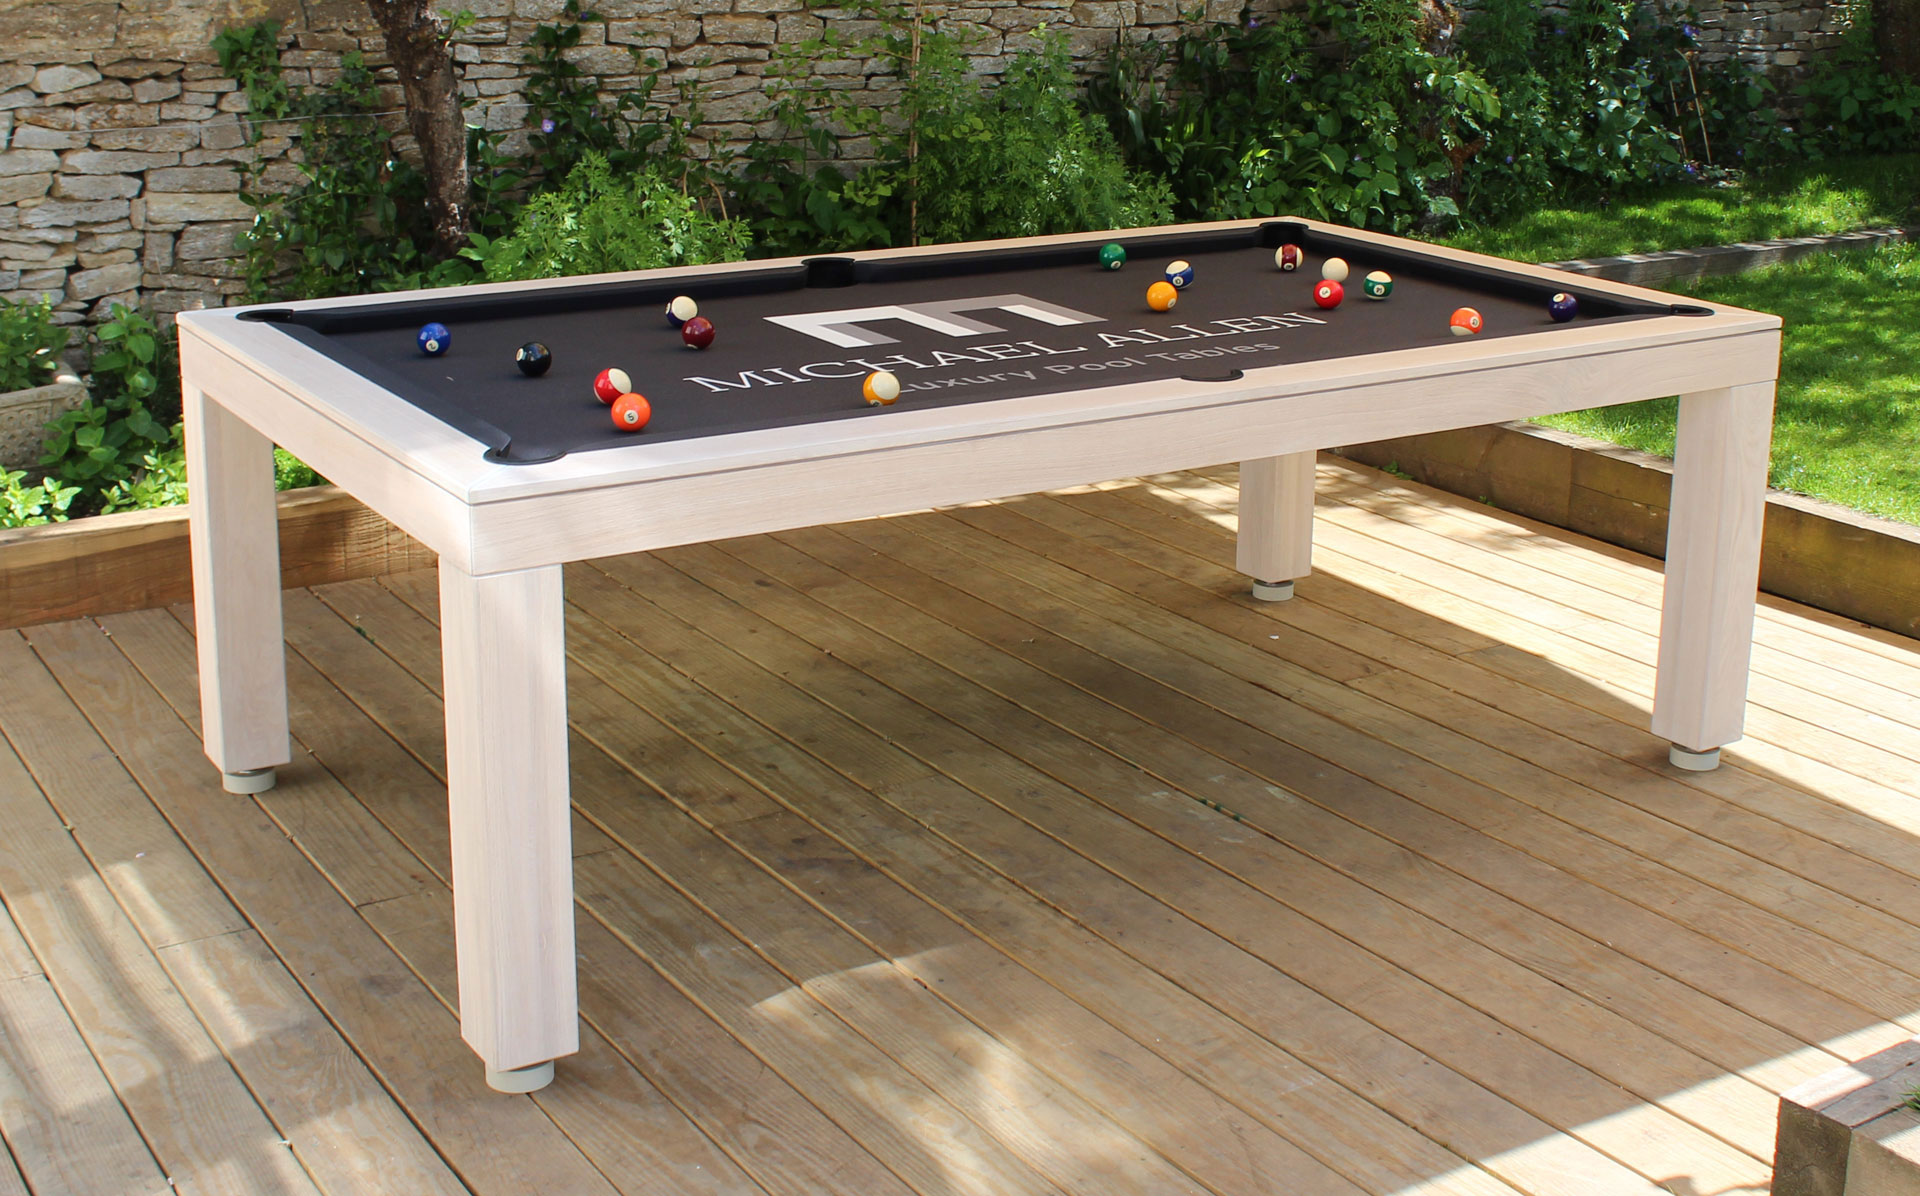 Outdoor Pool Table Luxury Pool Tables : OutdoorPoolTable9 from luxury-pool-tables.co.uk size 1920 x 1196 jpeg 485kB